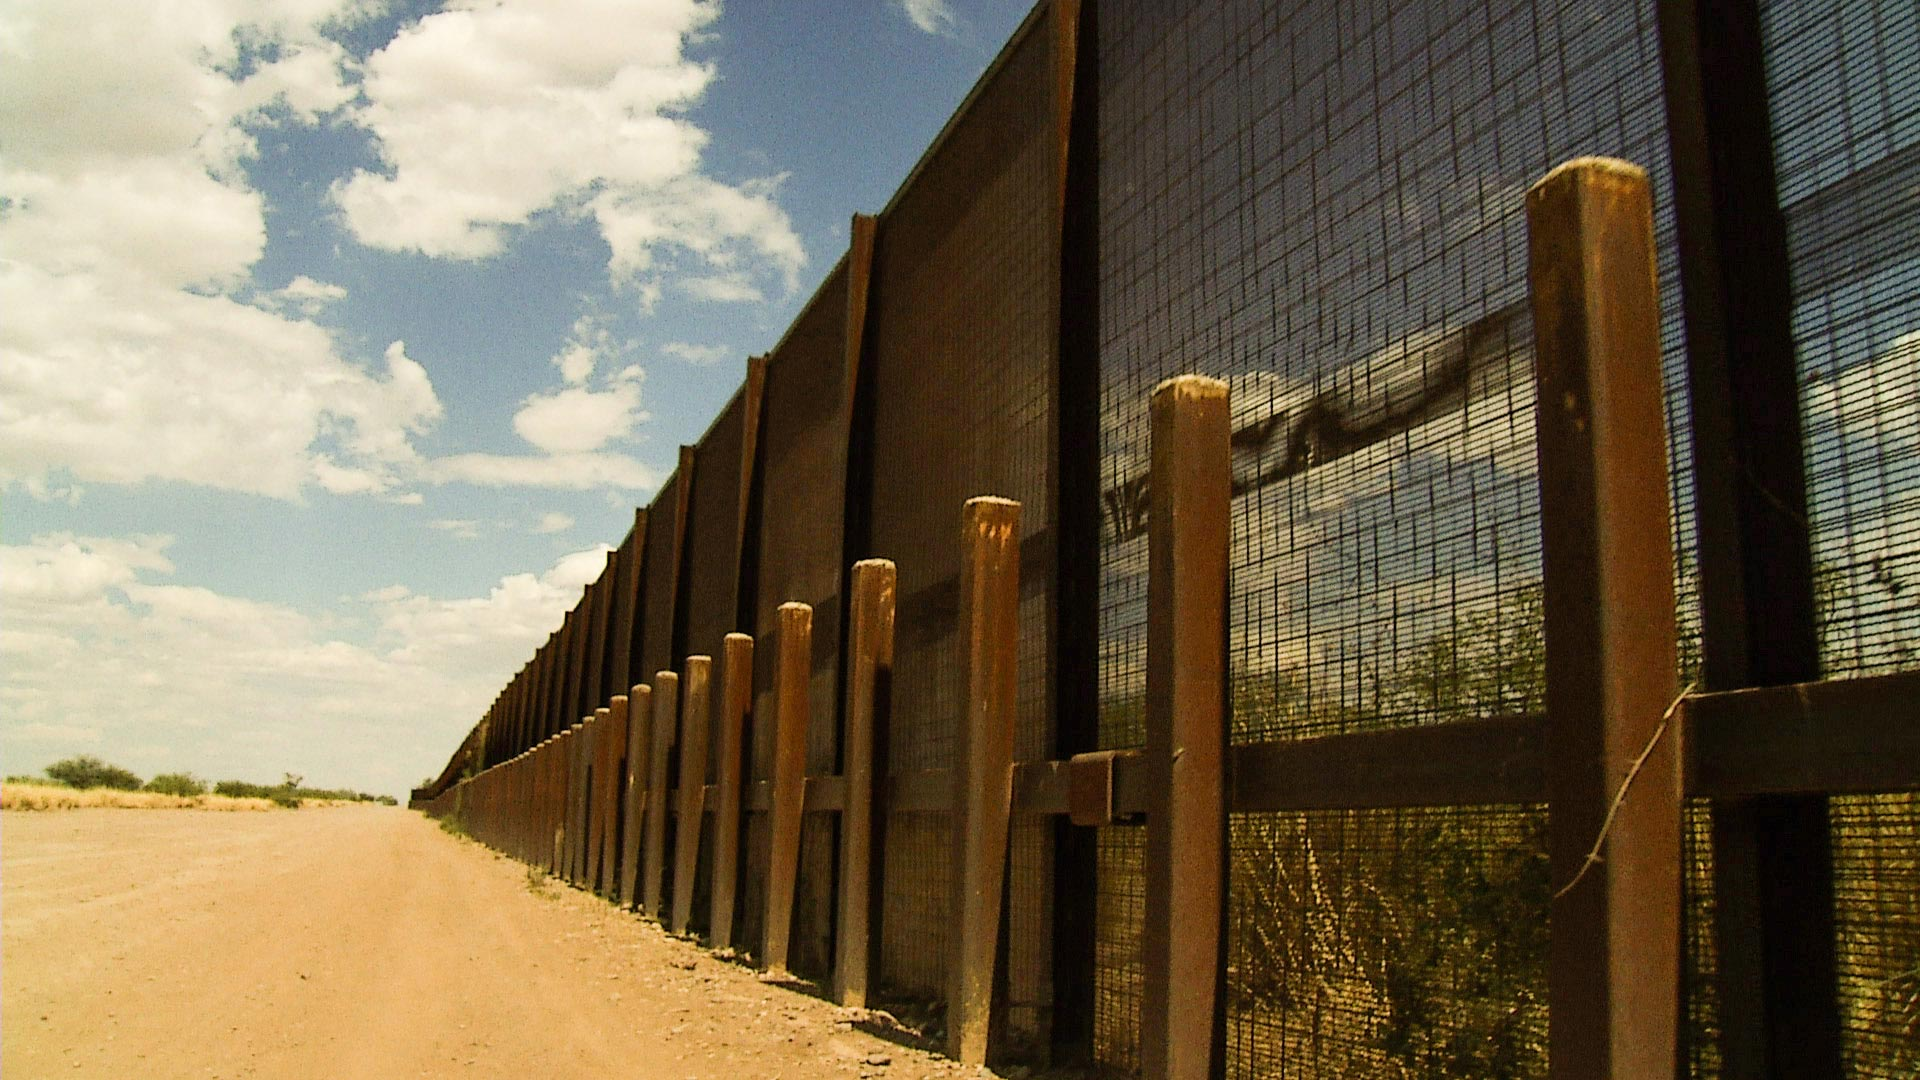 The U.S.-Mexican border fence near Nogales.